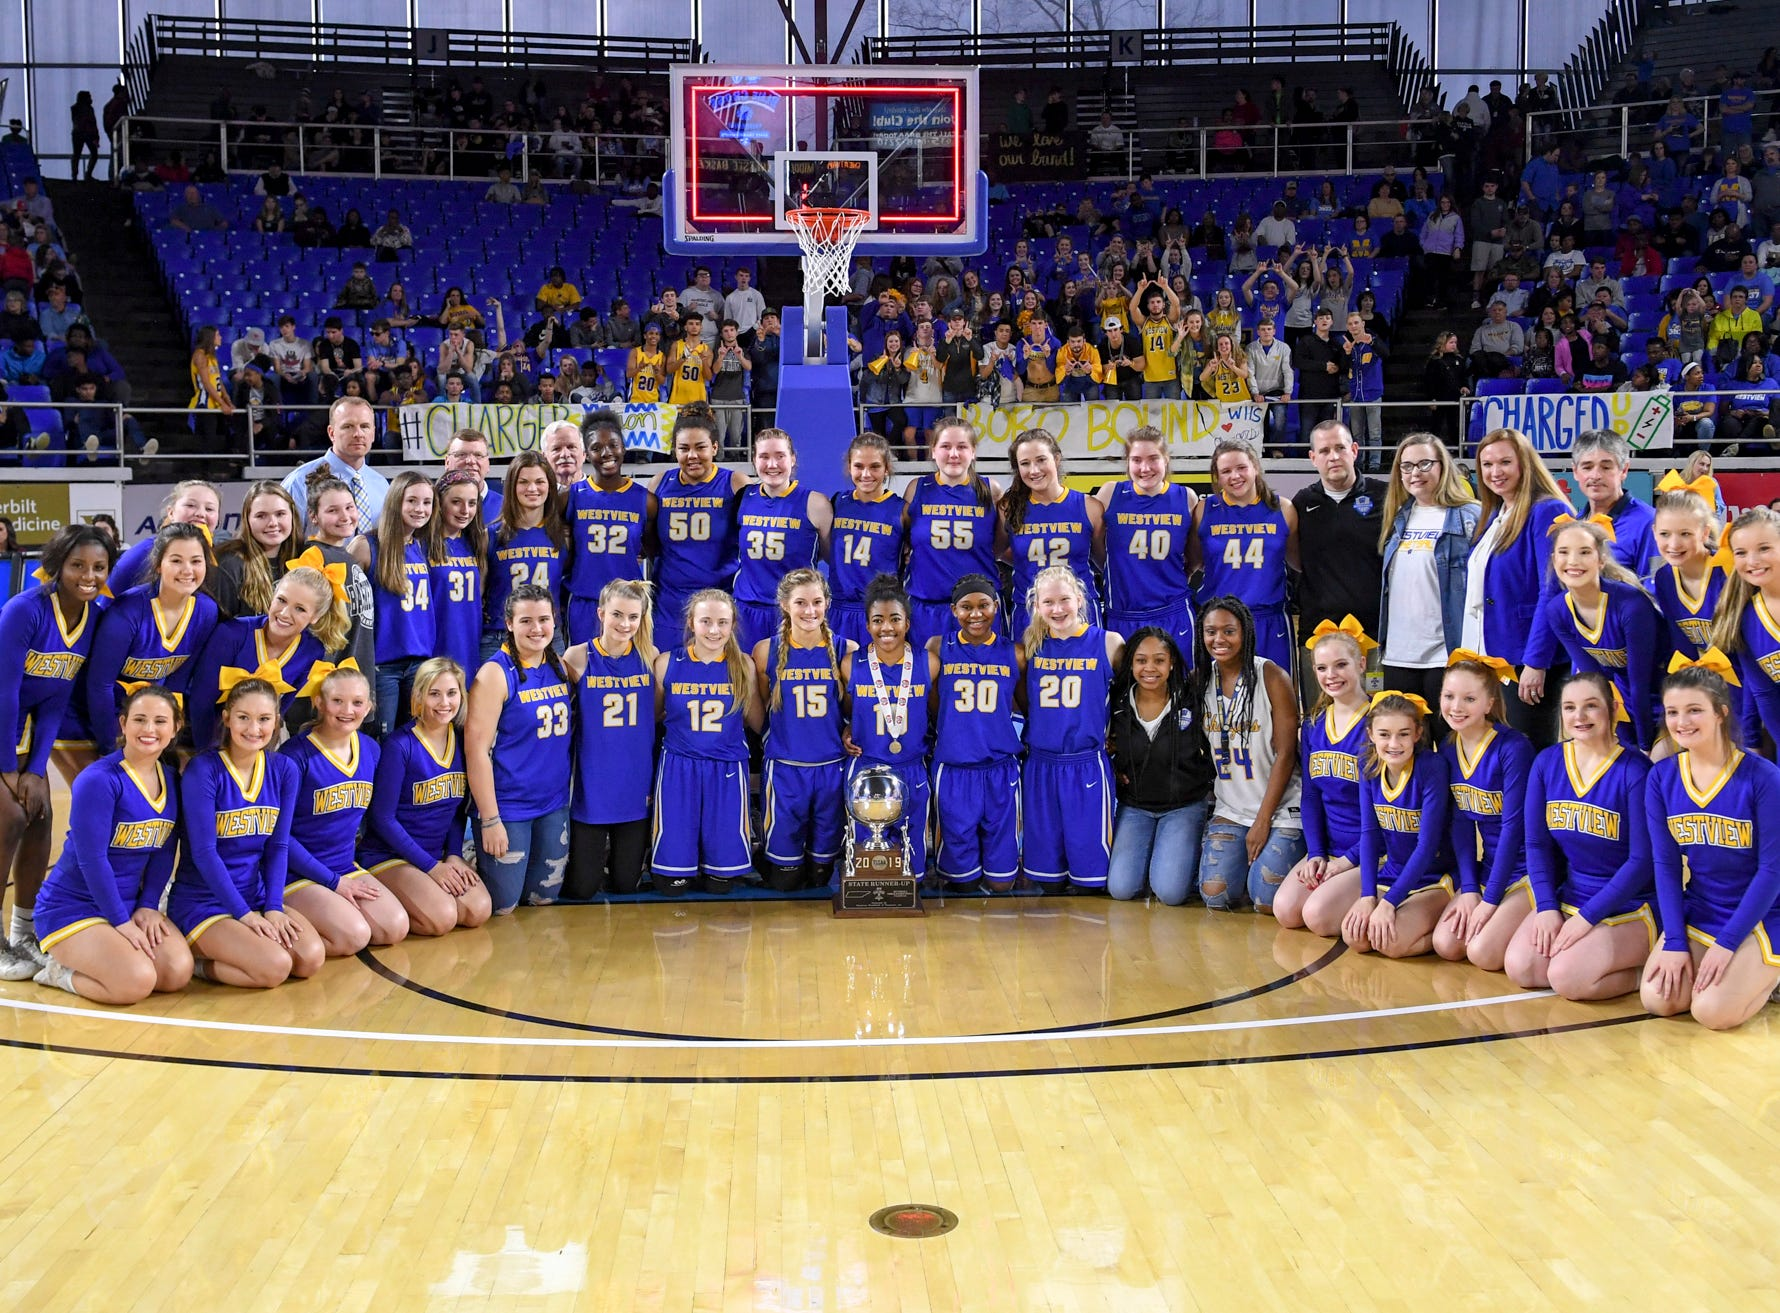 The Lady Chargers of Westview High School fell to Cheatham County, 43-30 in Class AA championship game, Saturday, March 9, 2019, in Murfreesboro. Westview ended their season 31-6.